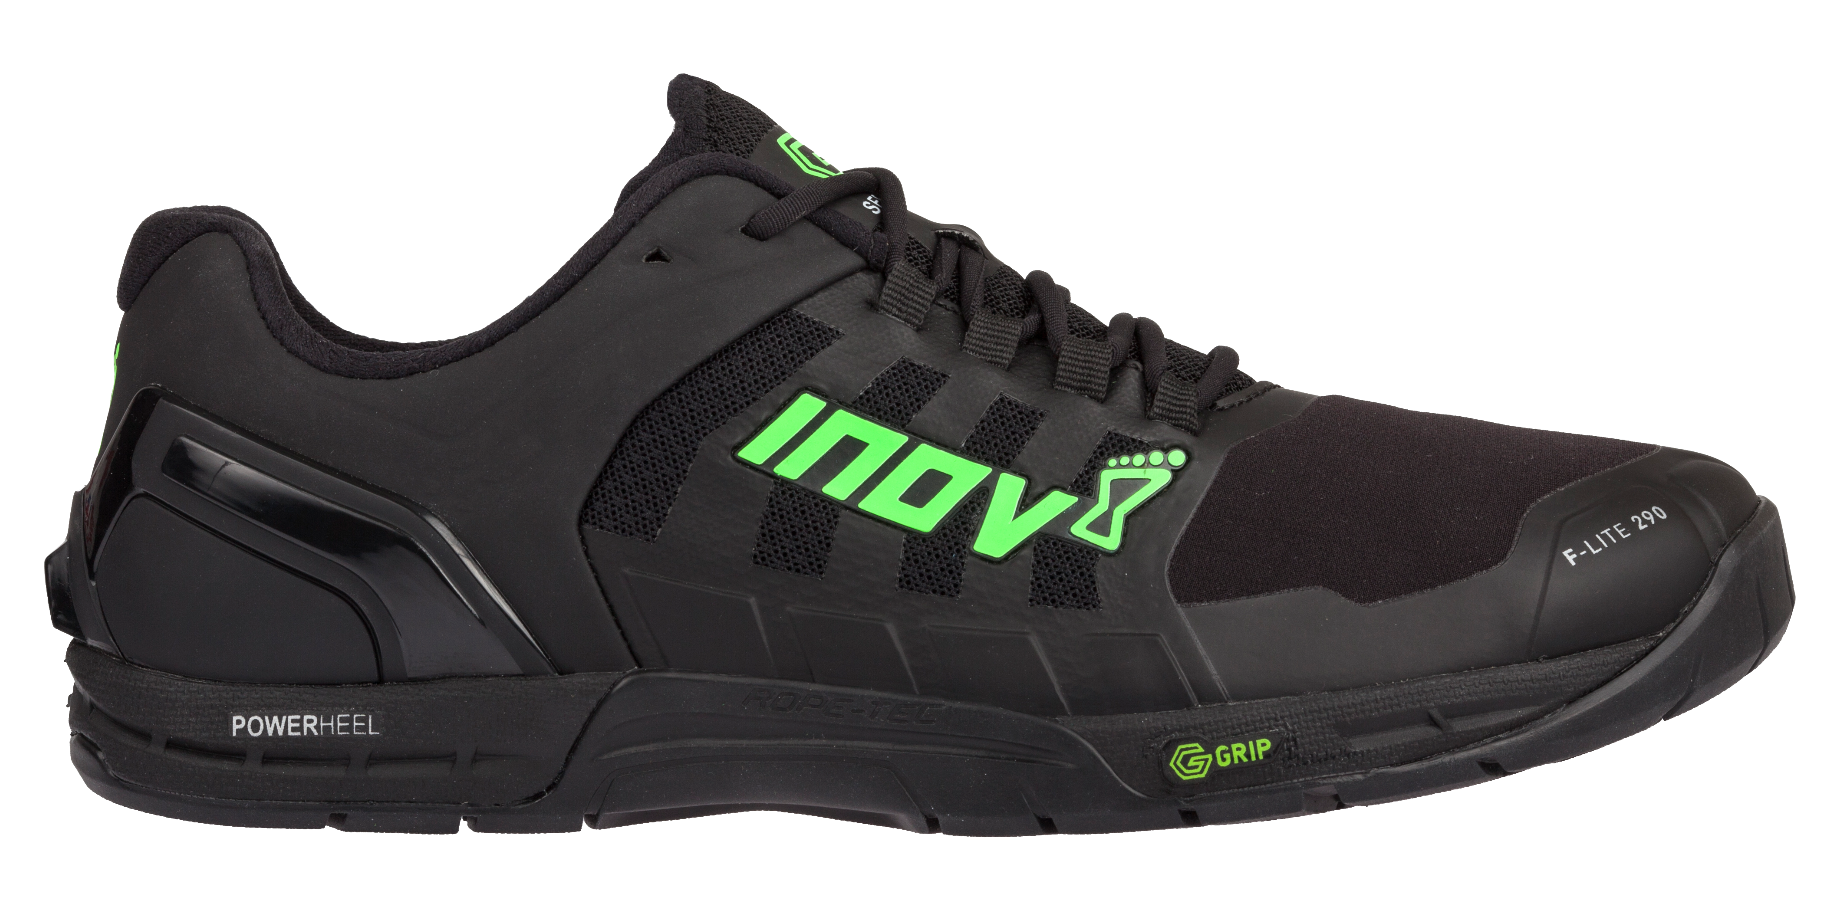 new arrival 387d6 d6e6c Best Inov-8 Running Shoes 2019 | Inov-8 Shoes for Road and Trail